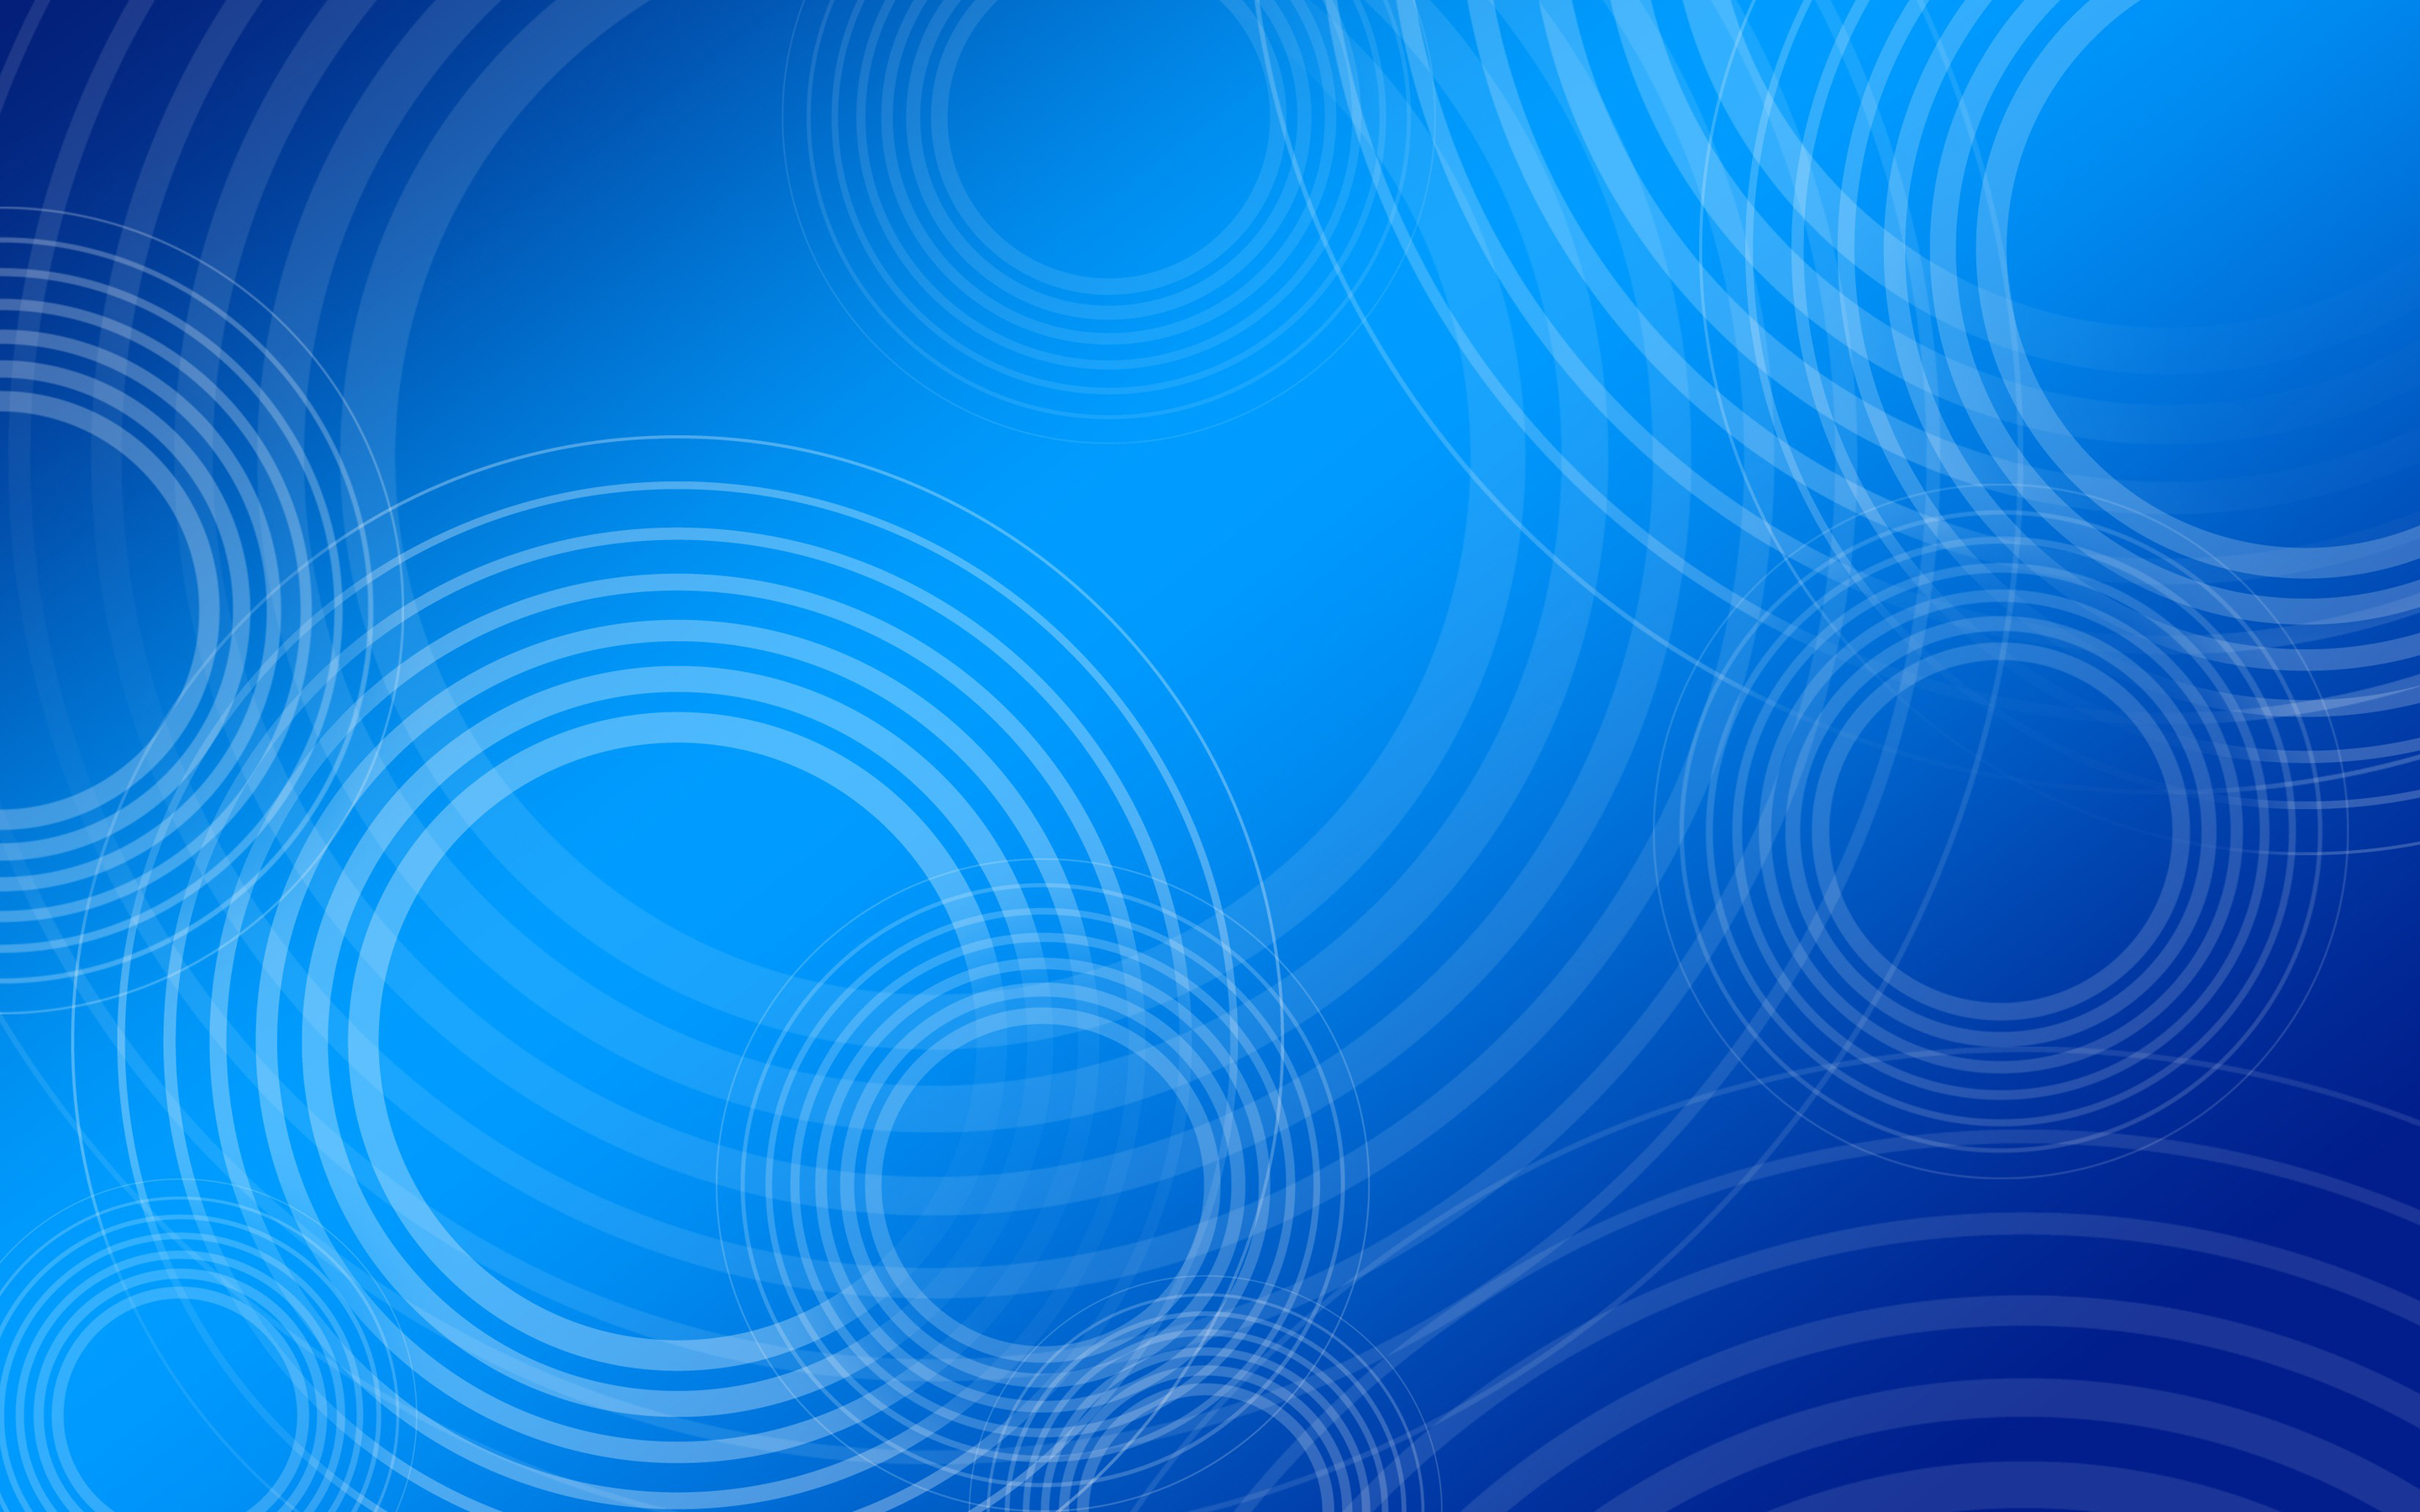 Hd Abstract Blue Background: Abstract-circular-blue-wallpaper-hd-wallpapers